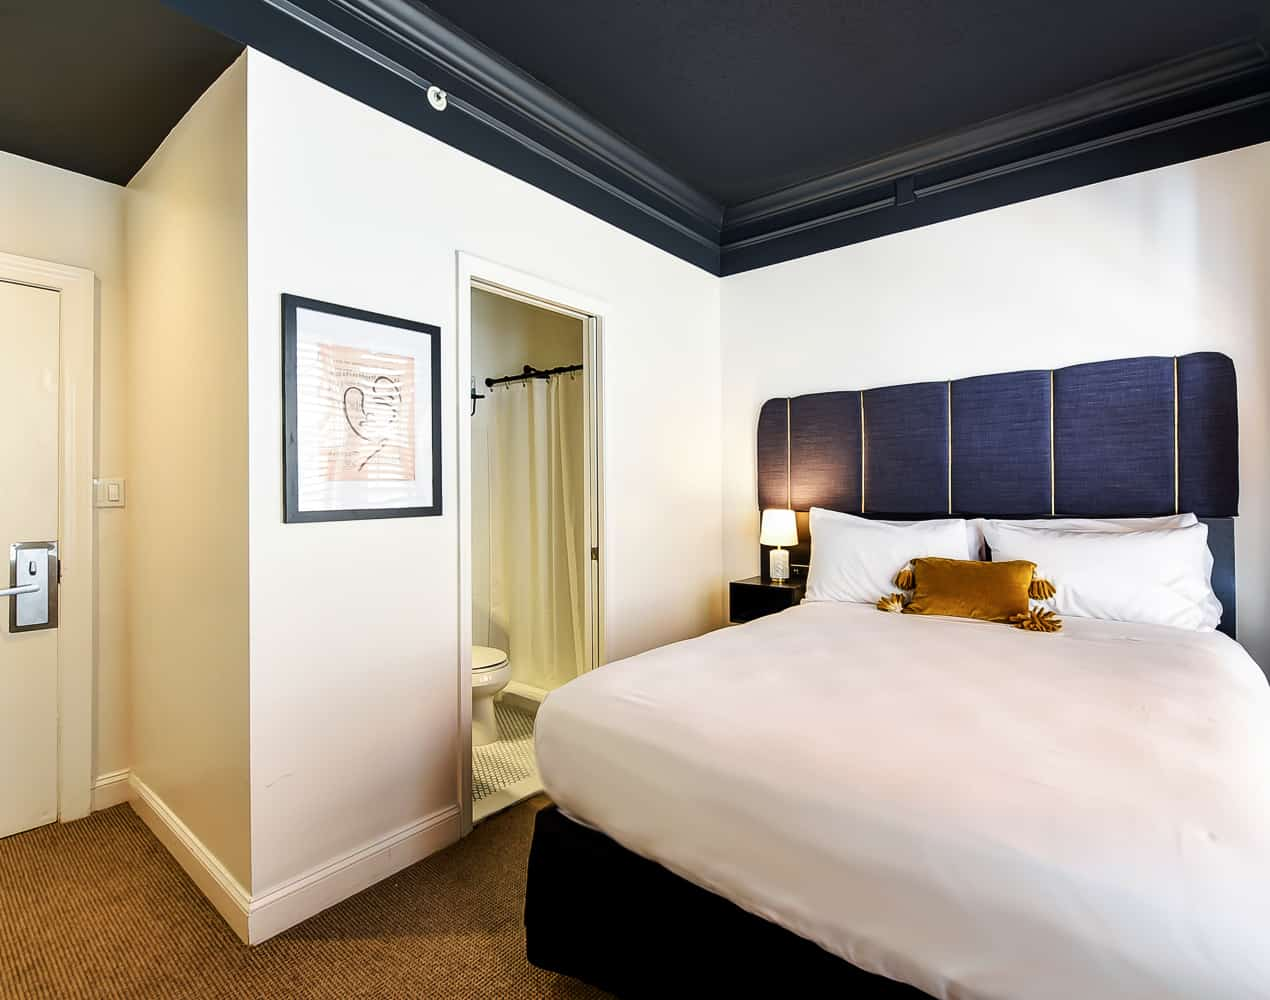 Dupont Circle Embassy Inn by FOUND - Rooms - Queen Room